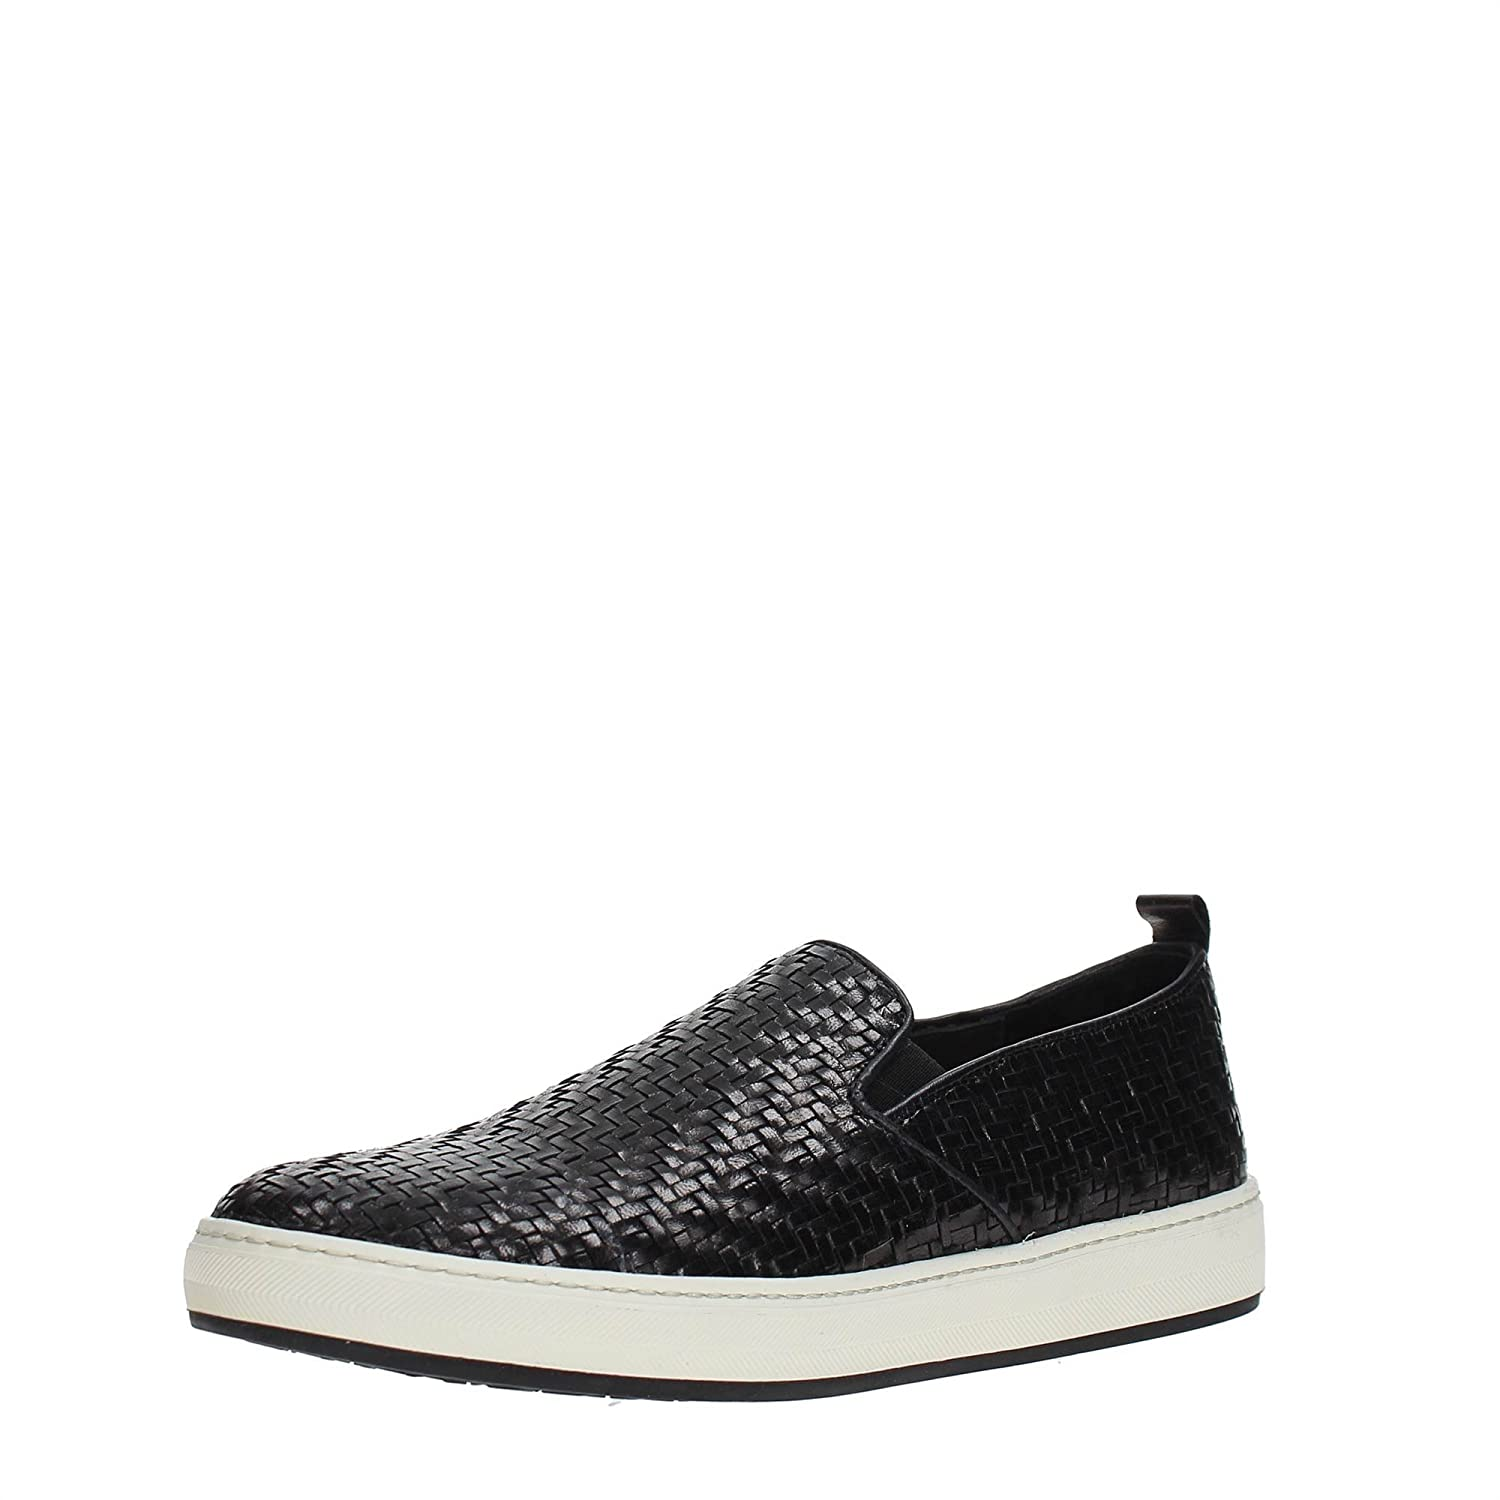 Frau Verona 28Q6 Slip On Herren Black 41